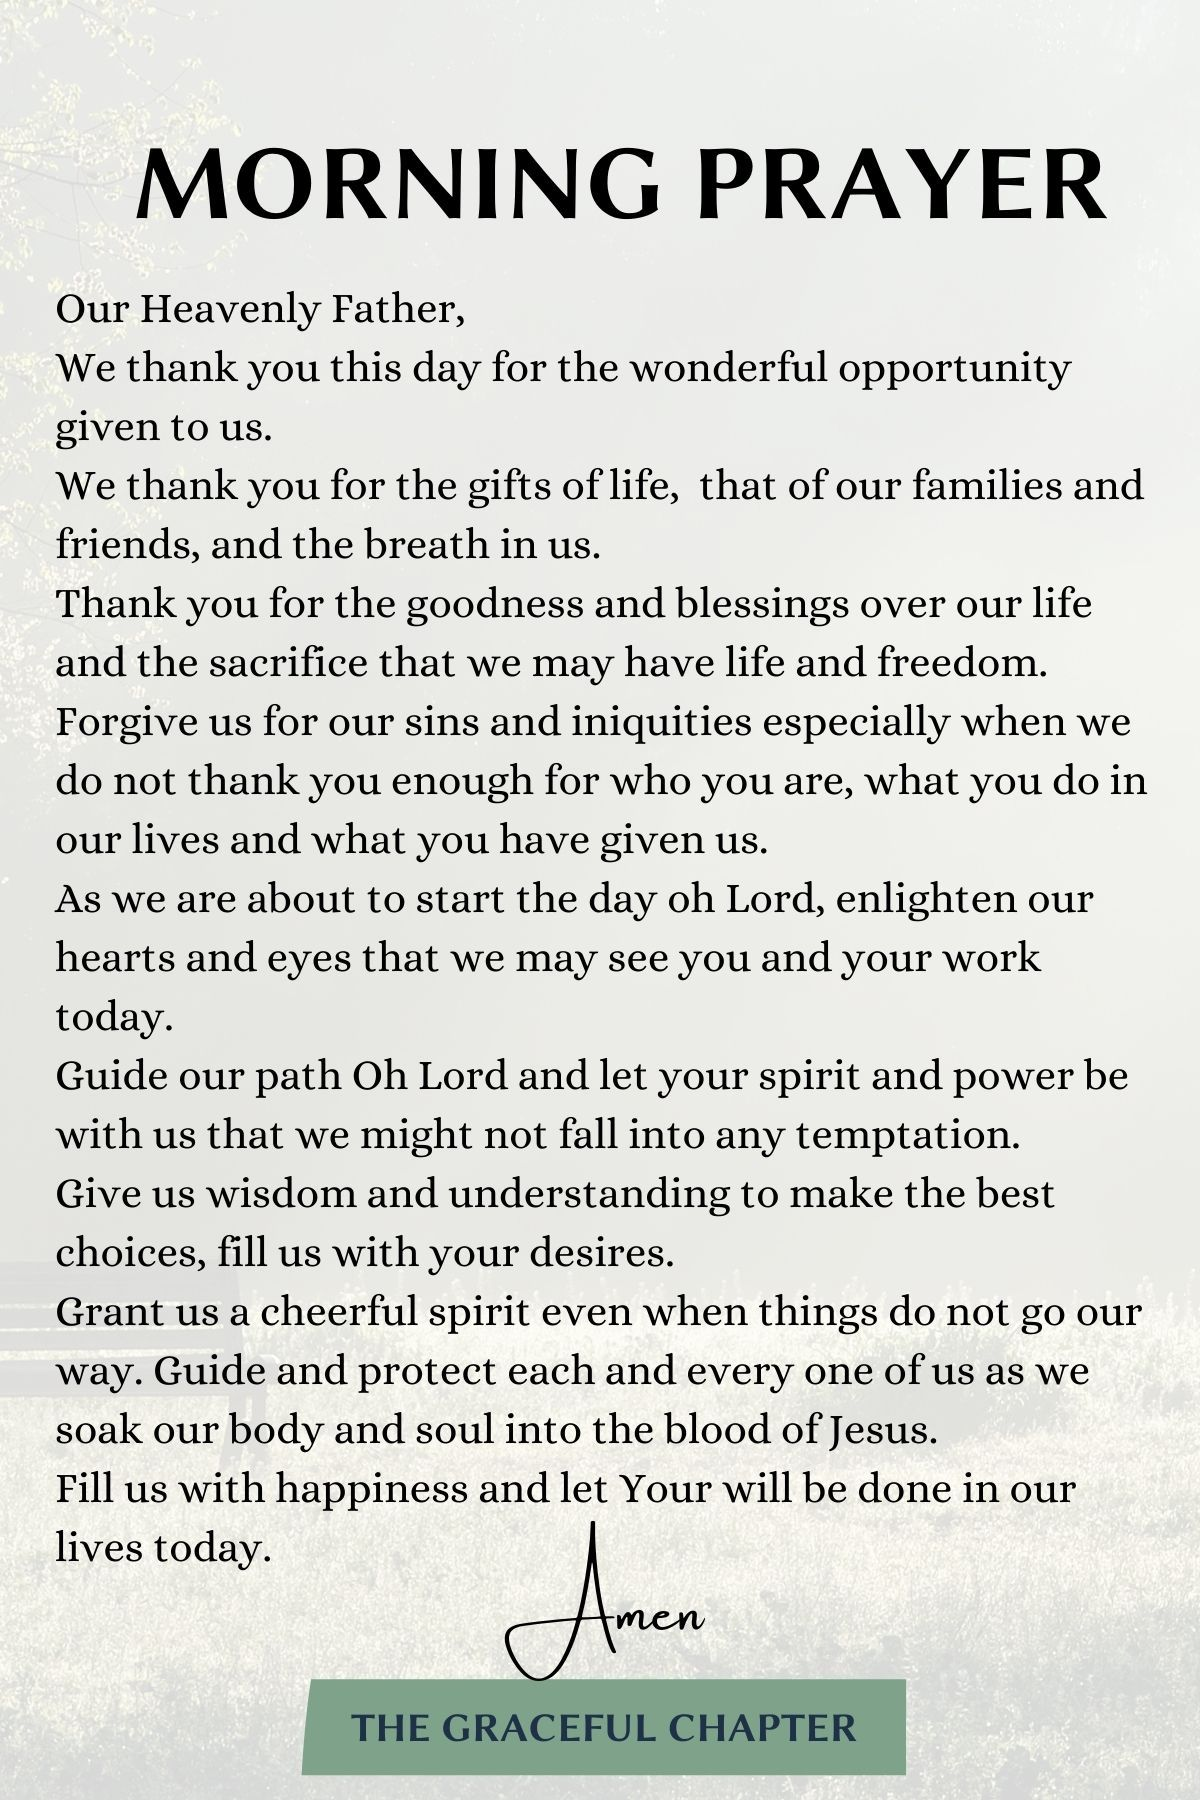 10 Uplifting Morning Prayers To Start Your Day - The Graceful Chapter